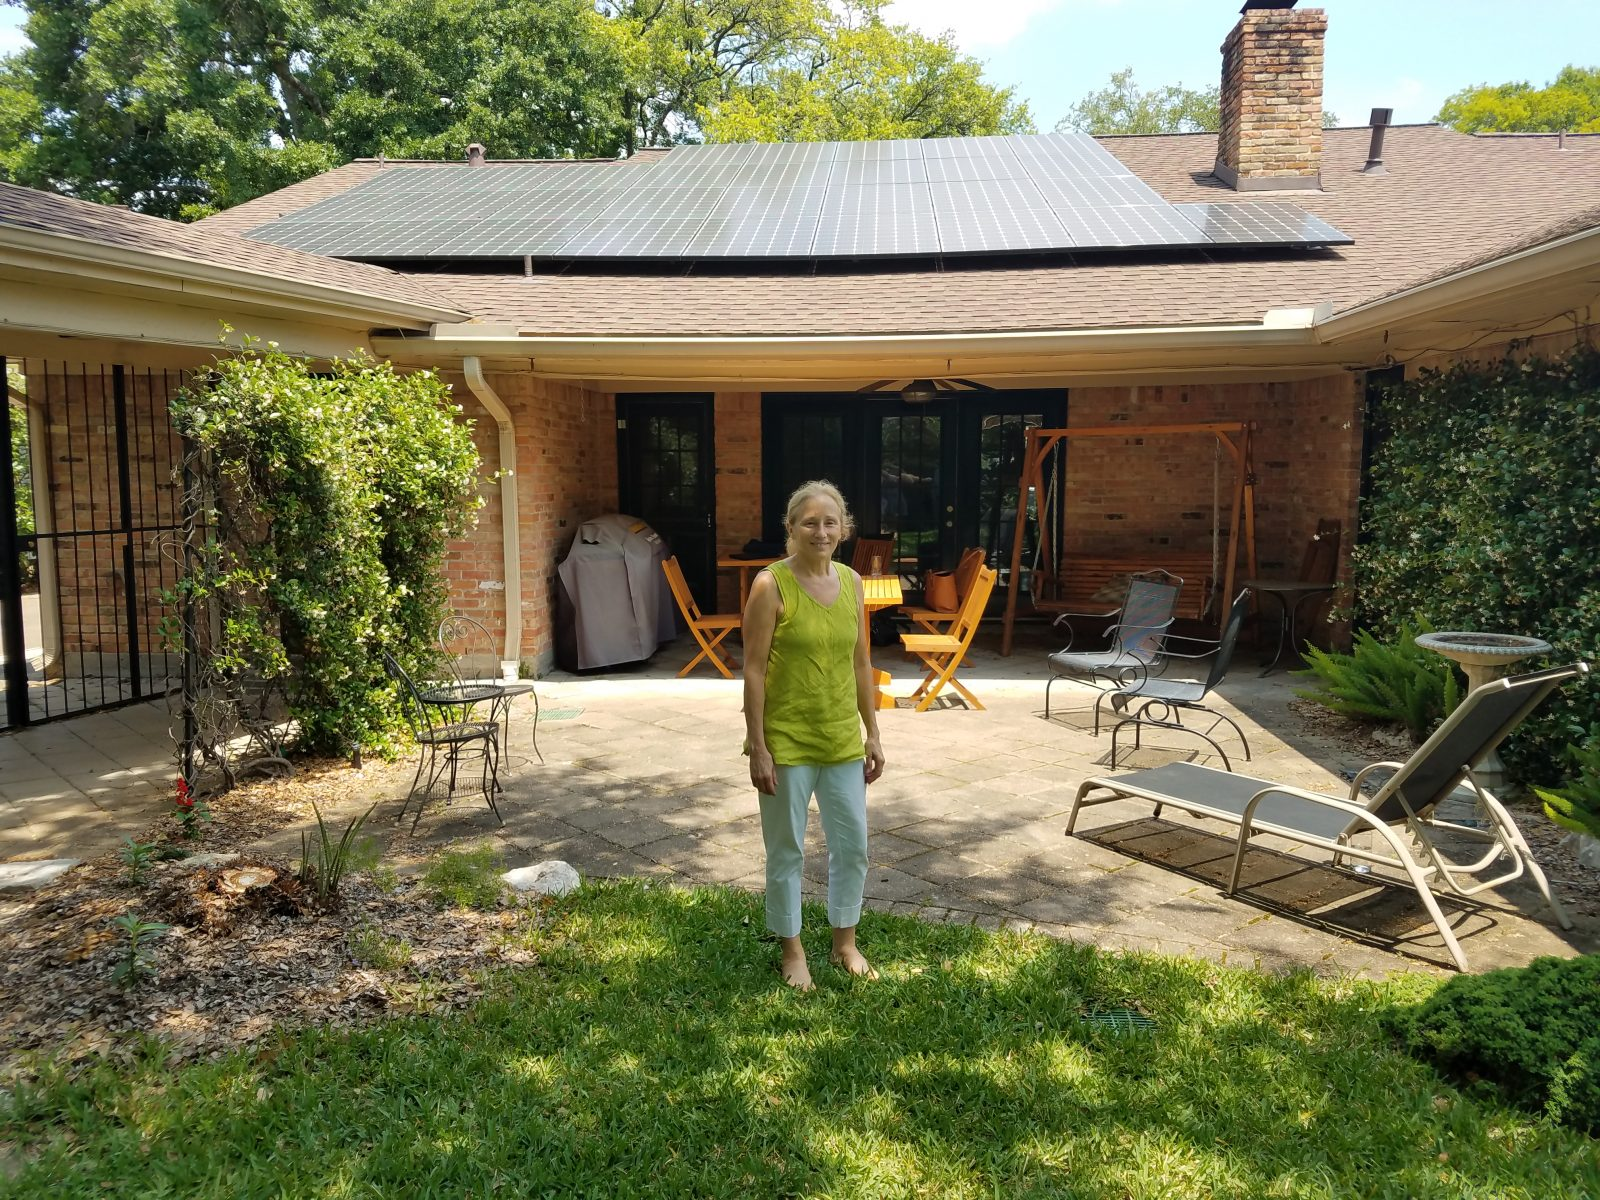 Dori Wolfe, one of the exhibitors in the Industry Showcase, leads CEBN staff on a tour of net zero home energy solutions the day after the forum.